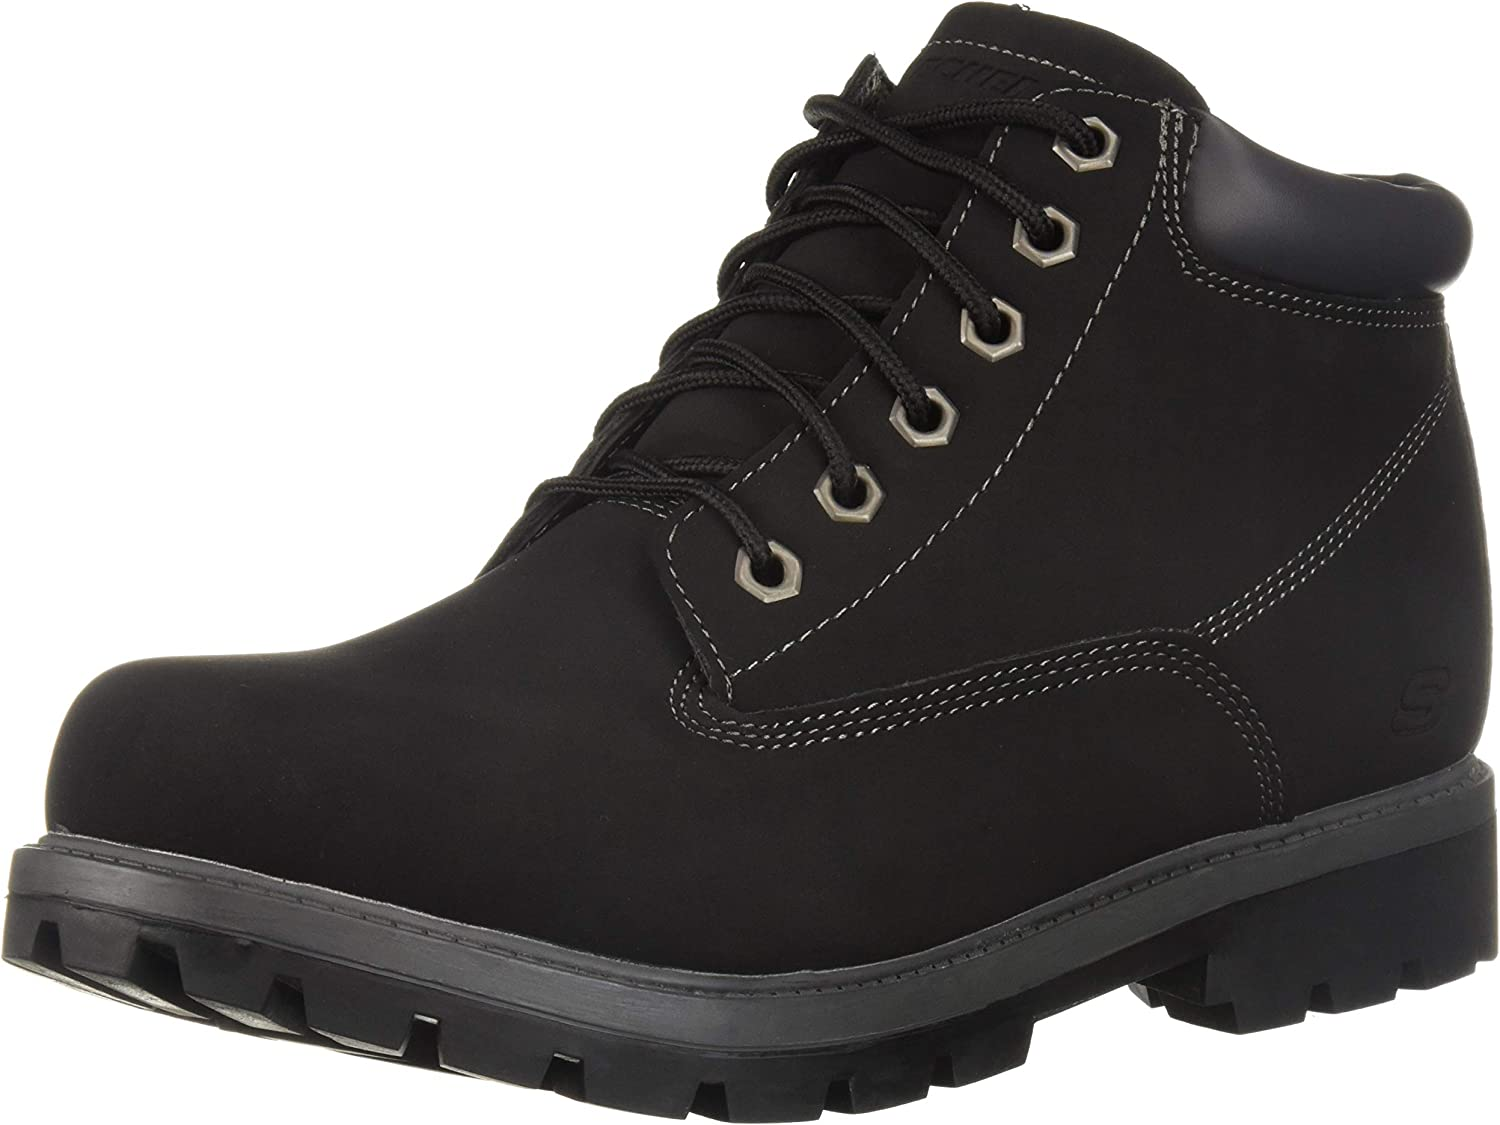 Skechers Max 81% OFF Courier shipping free Men's Toric-Amado Chukka Boot